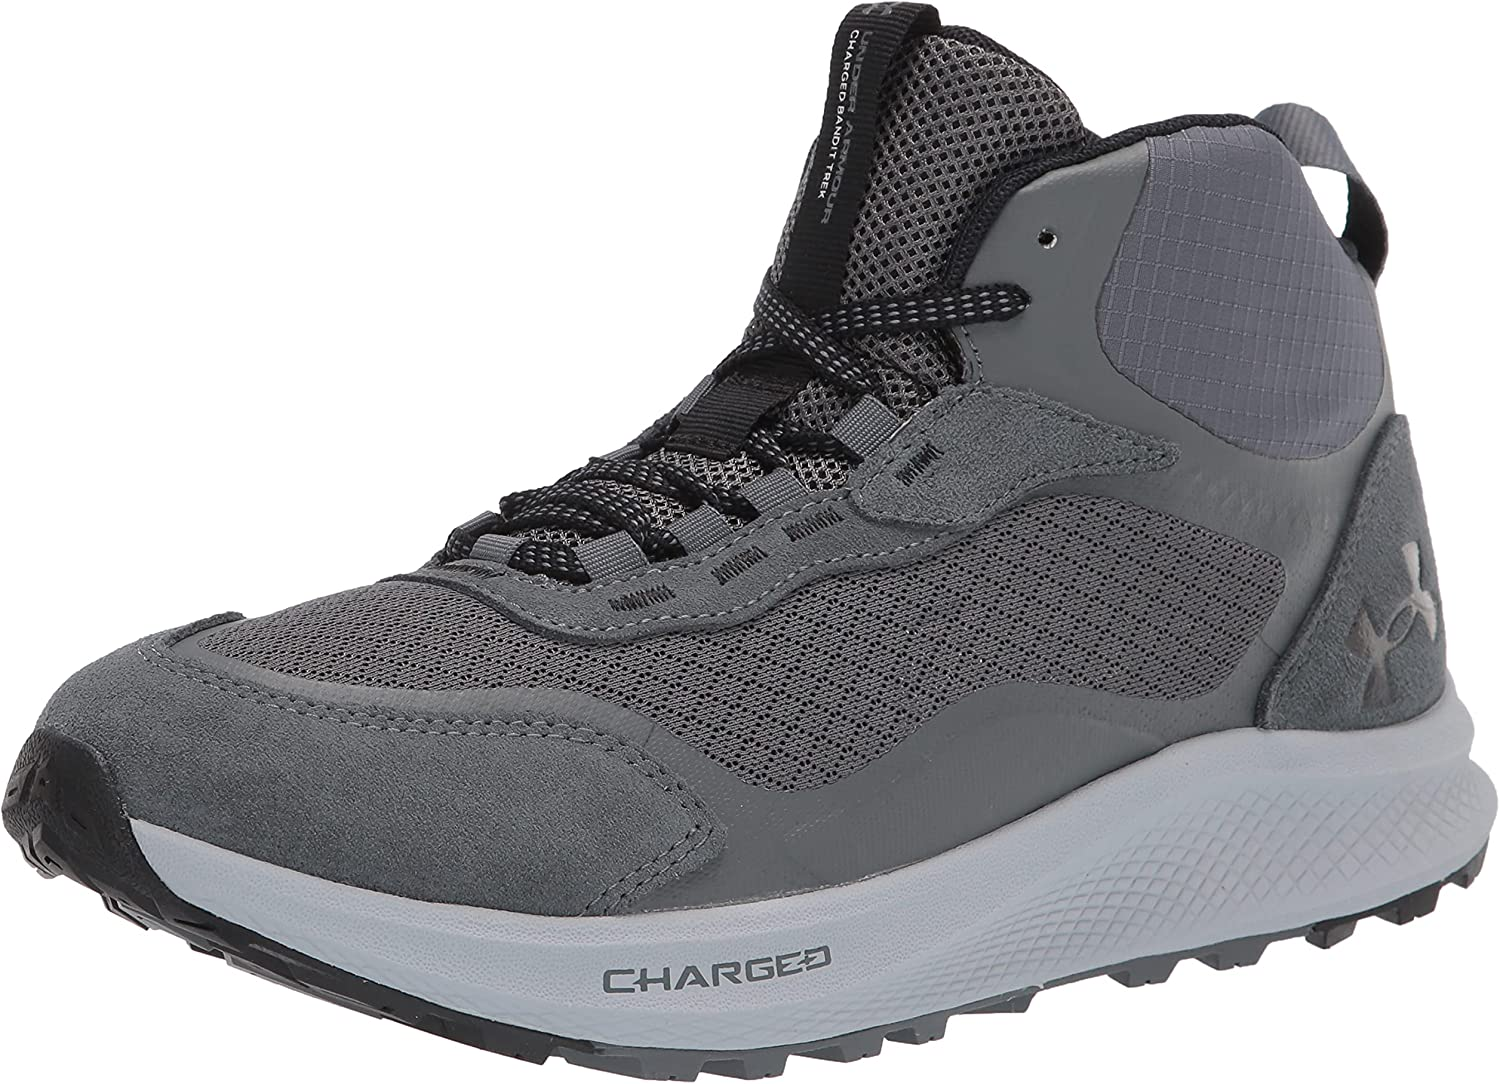 Under San Francisco Mall Armour Men's Charged Bandit 2 Trek NEW before selling Boot Hiking